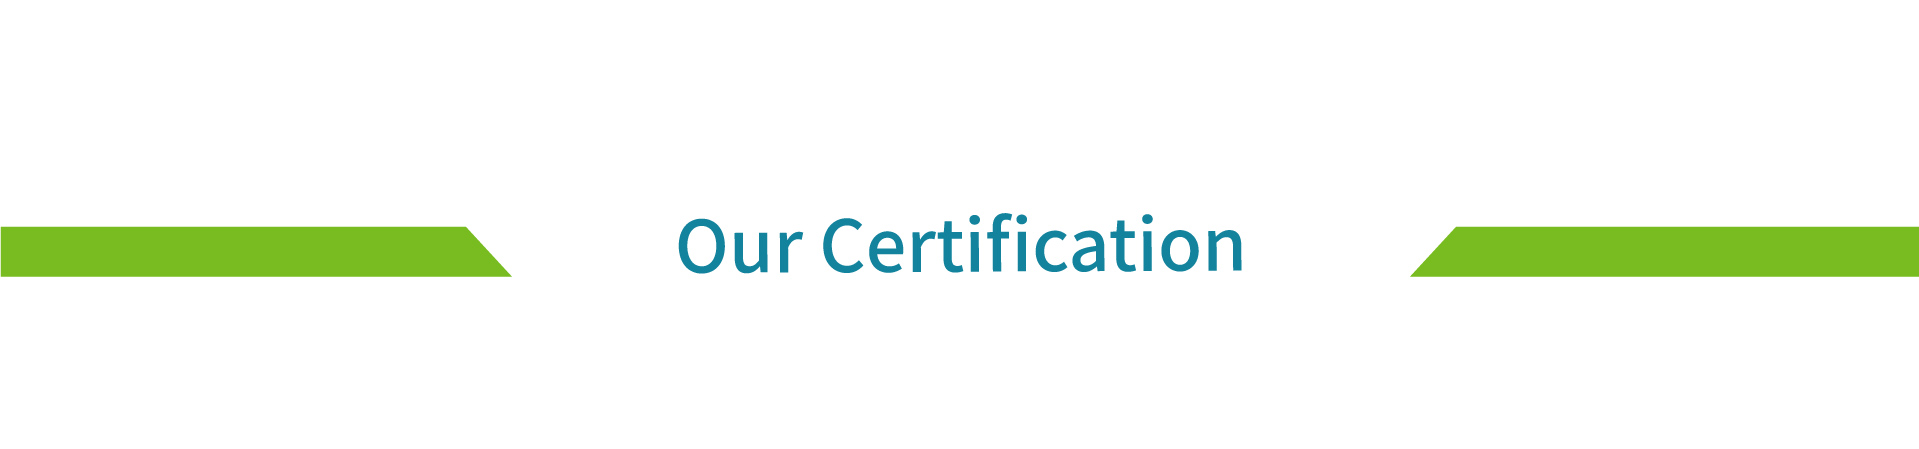 eYc-Our-Certification